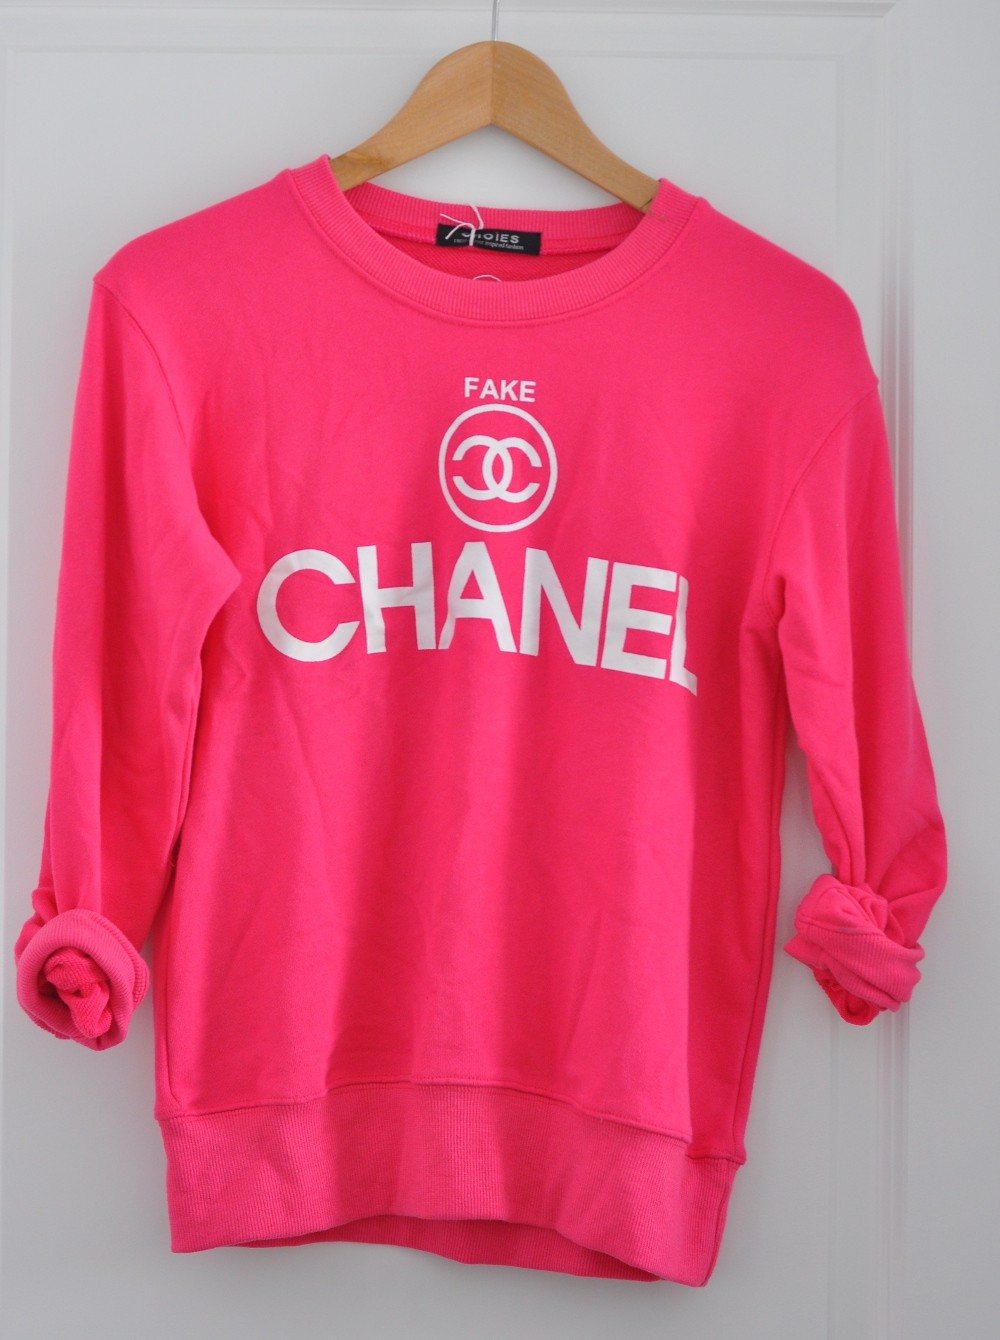 Hot pink fake chanel sweater by dogsanddresses